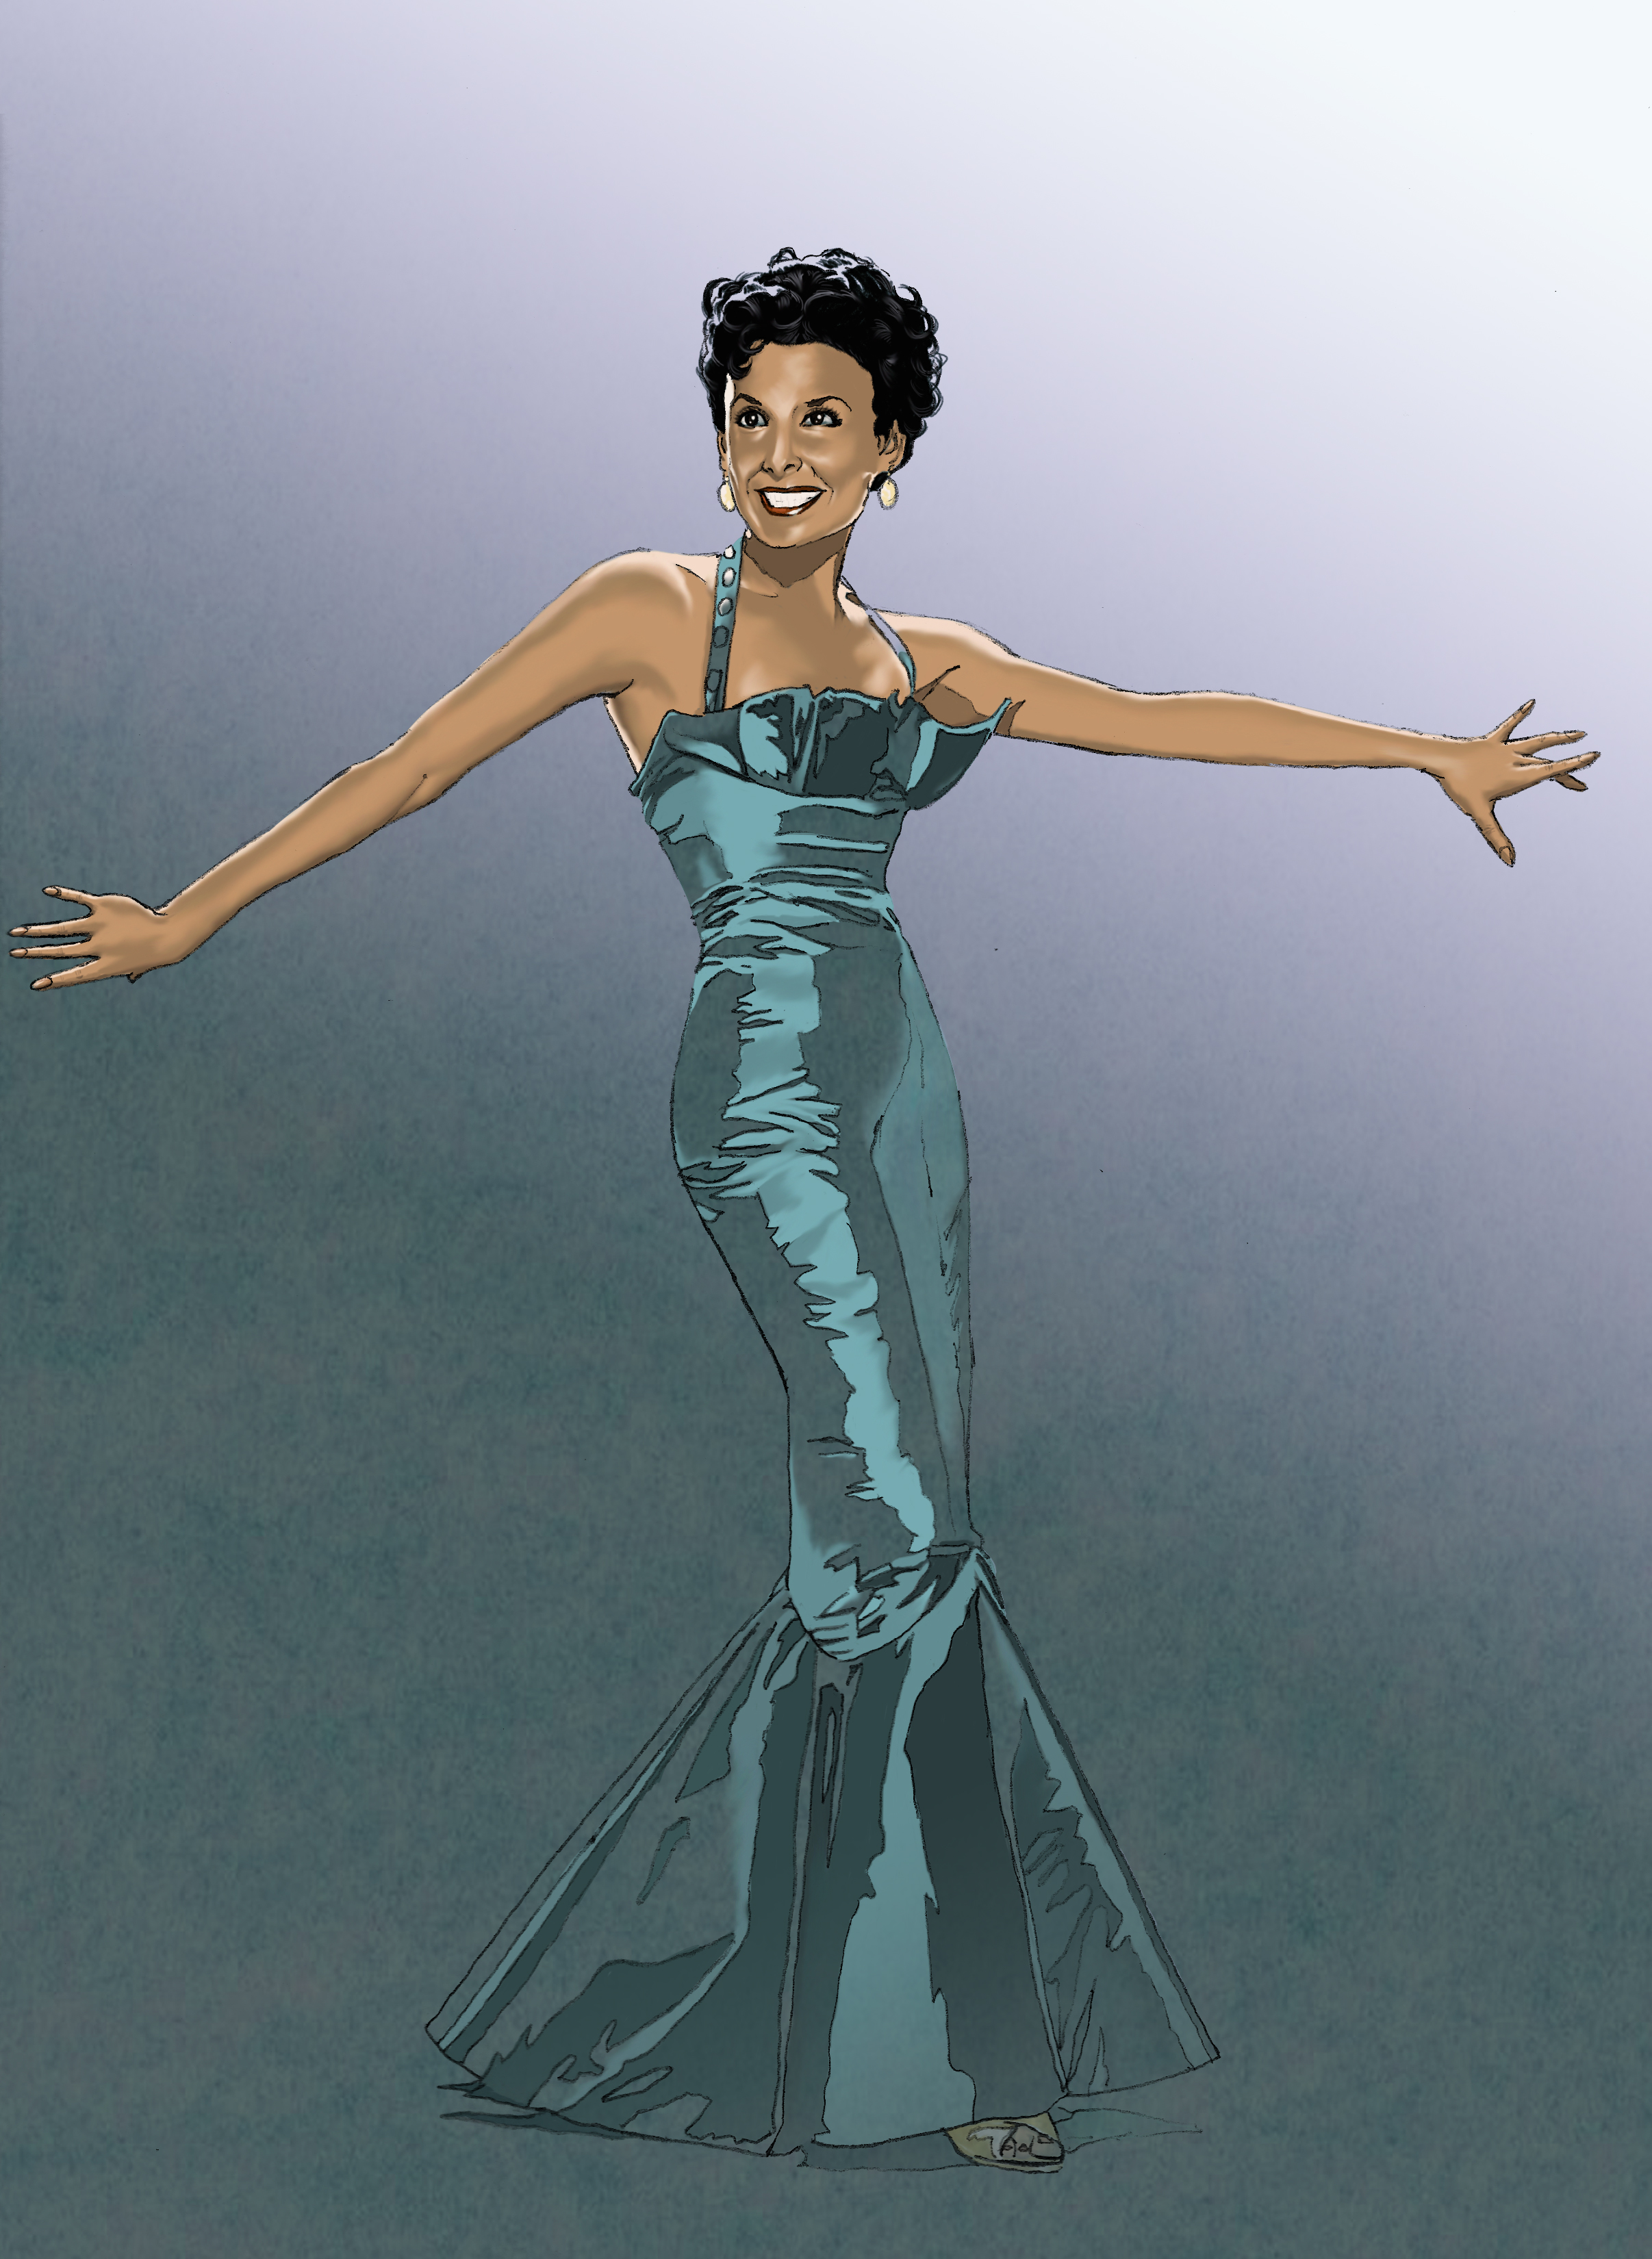 Digital painting of late singer-actress Lena Horne. Painted in Photoshop, with pencil drawing.